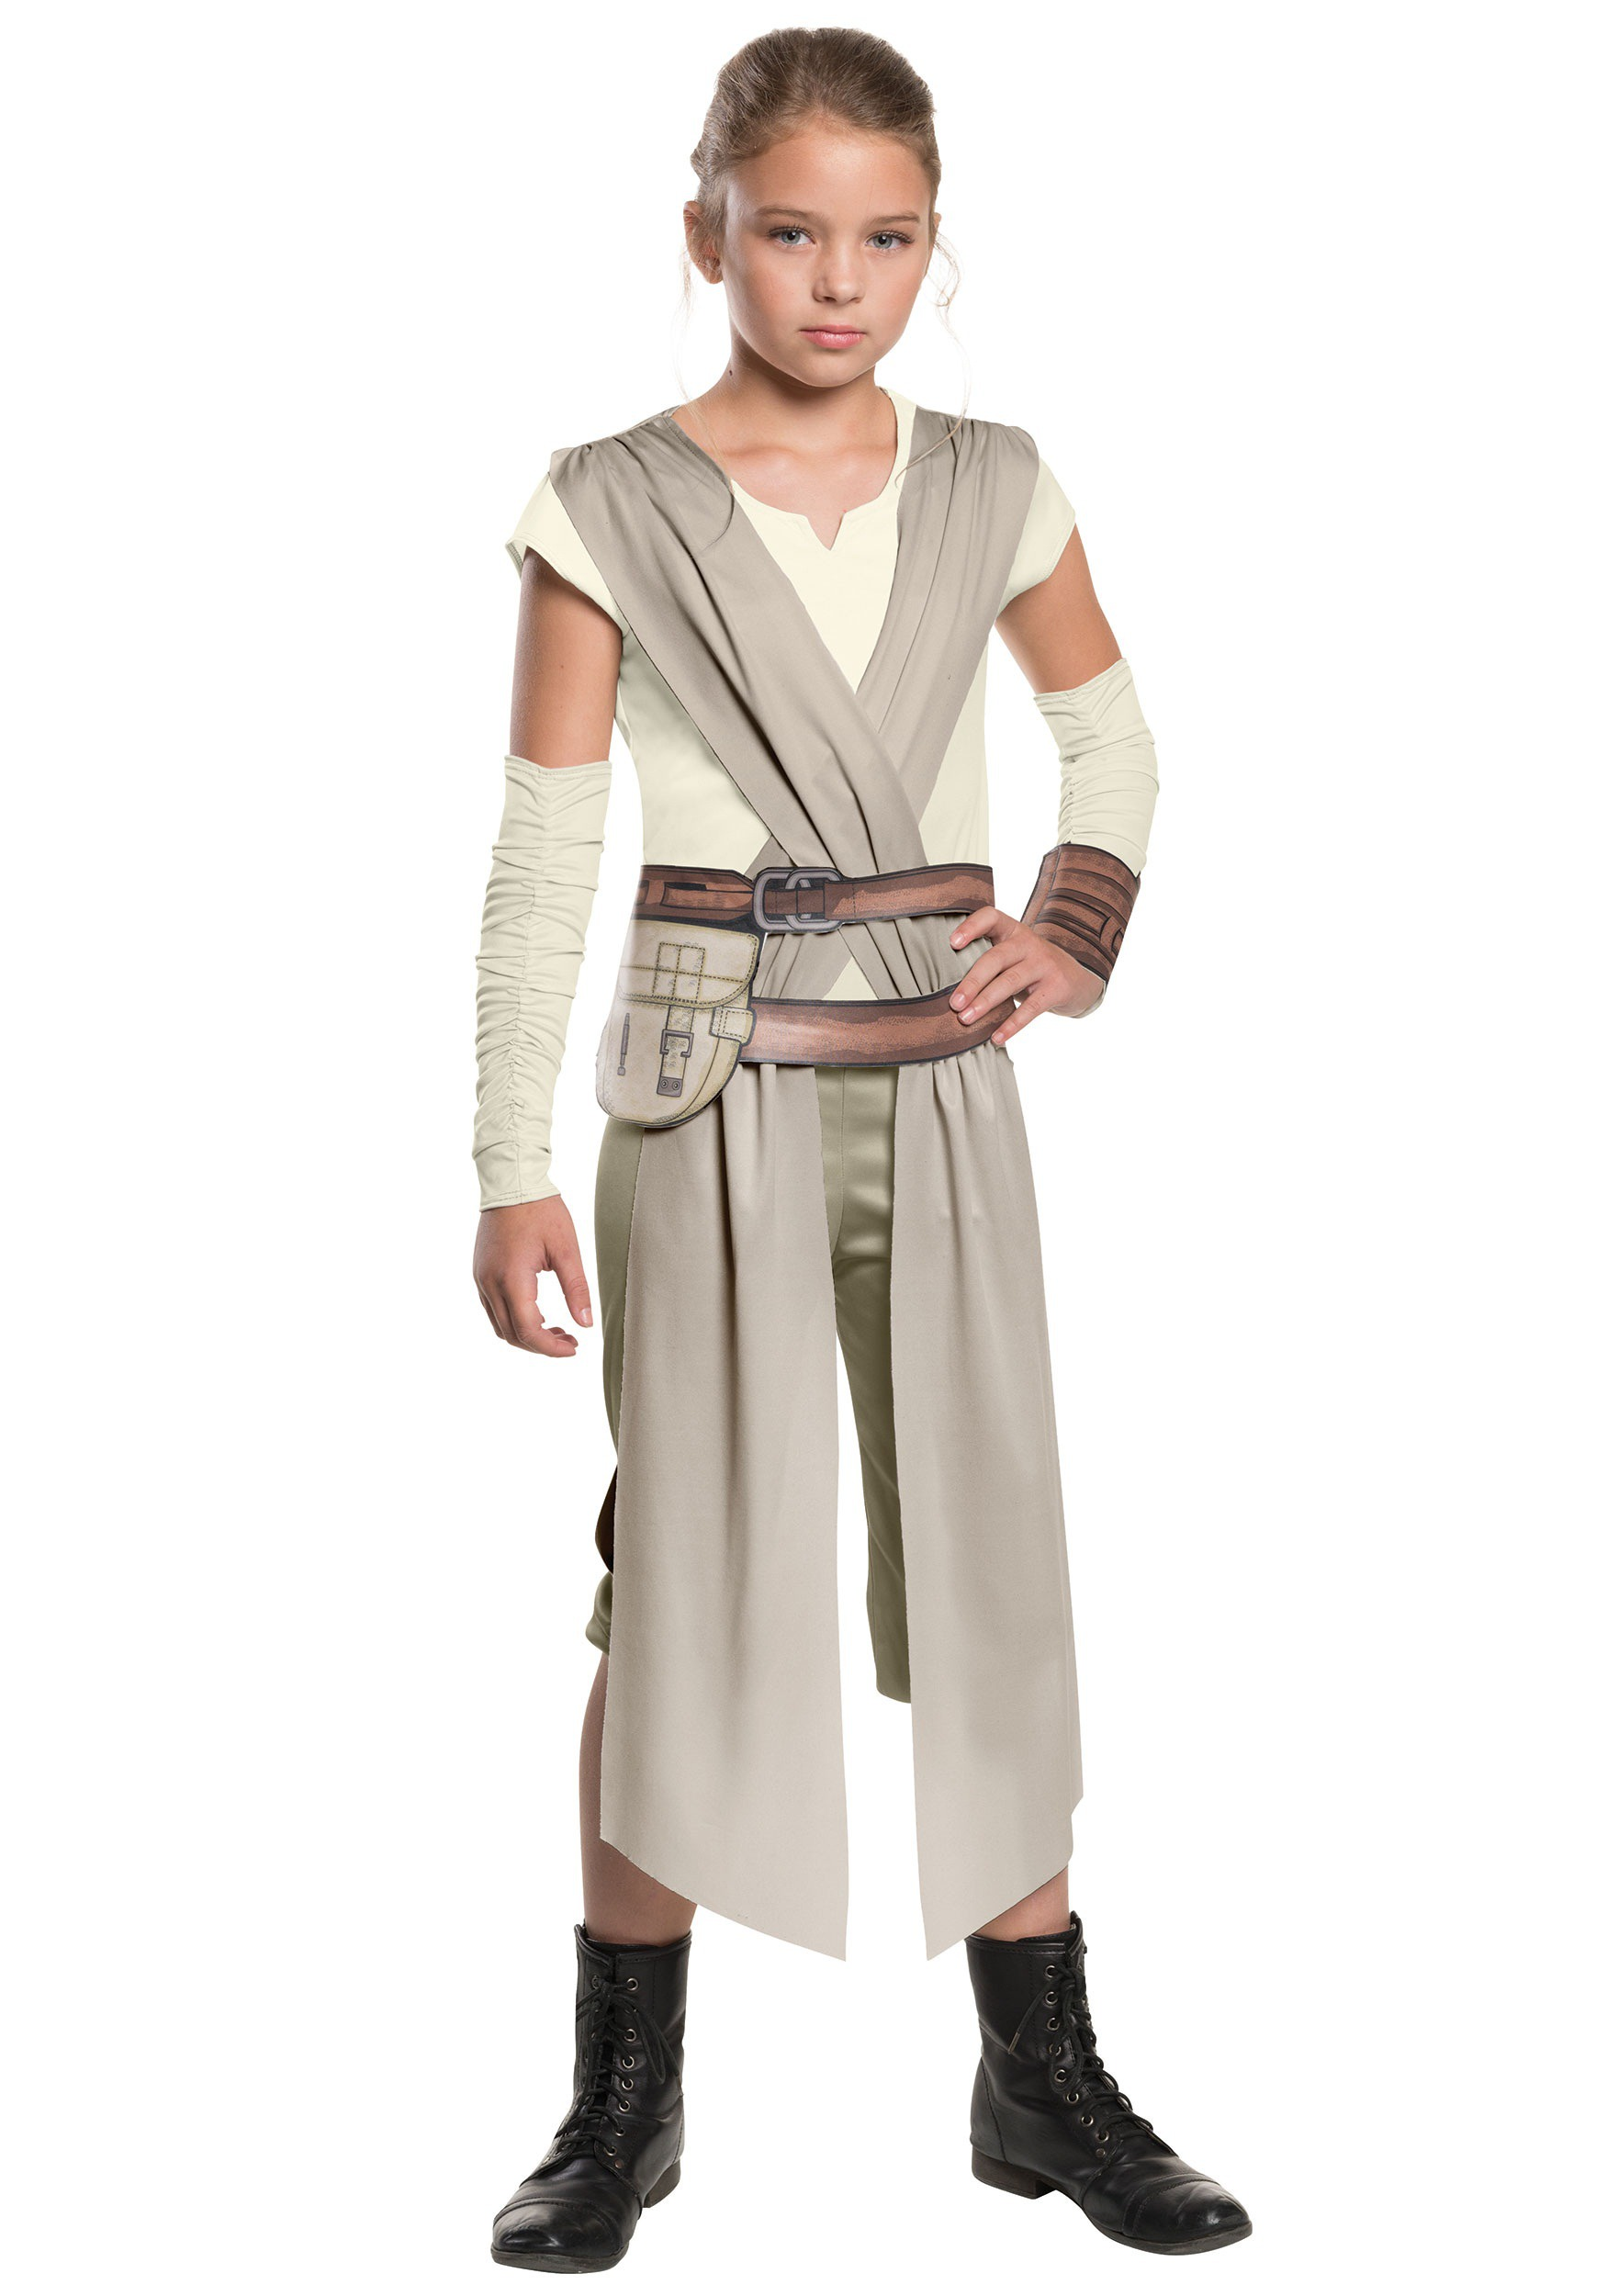 Star Wars Halloween Costumes.Child Classic Star Wars The Force Awakens Rey Costume